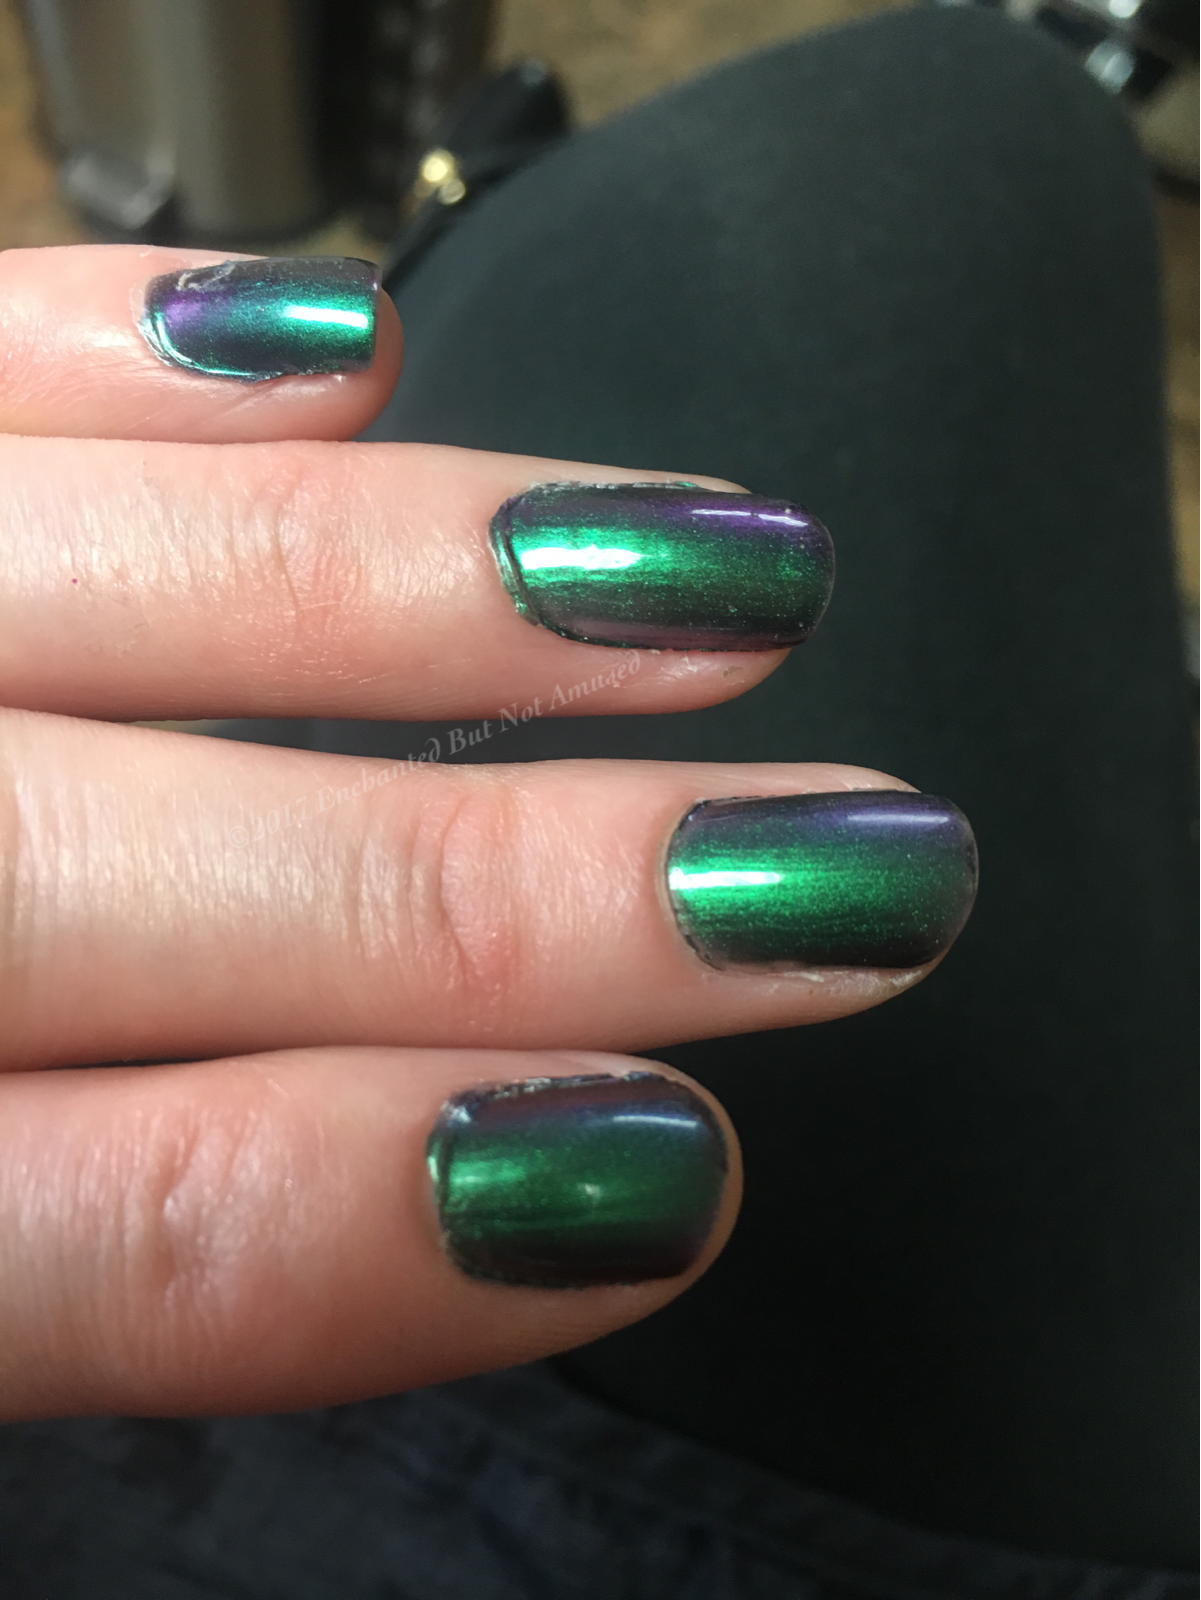 Show Me Your Nails 2.0 - Beauty Insider Community